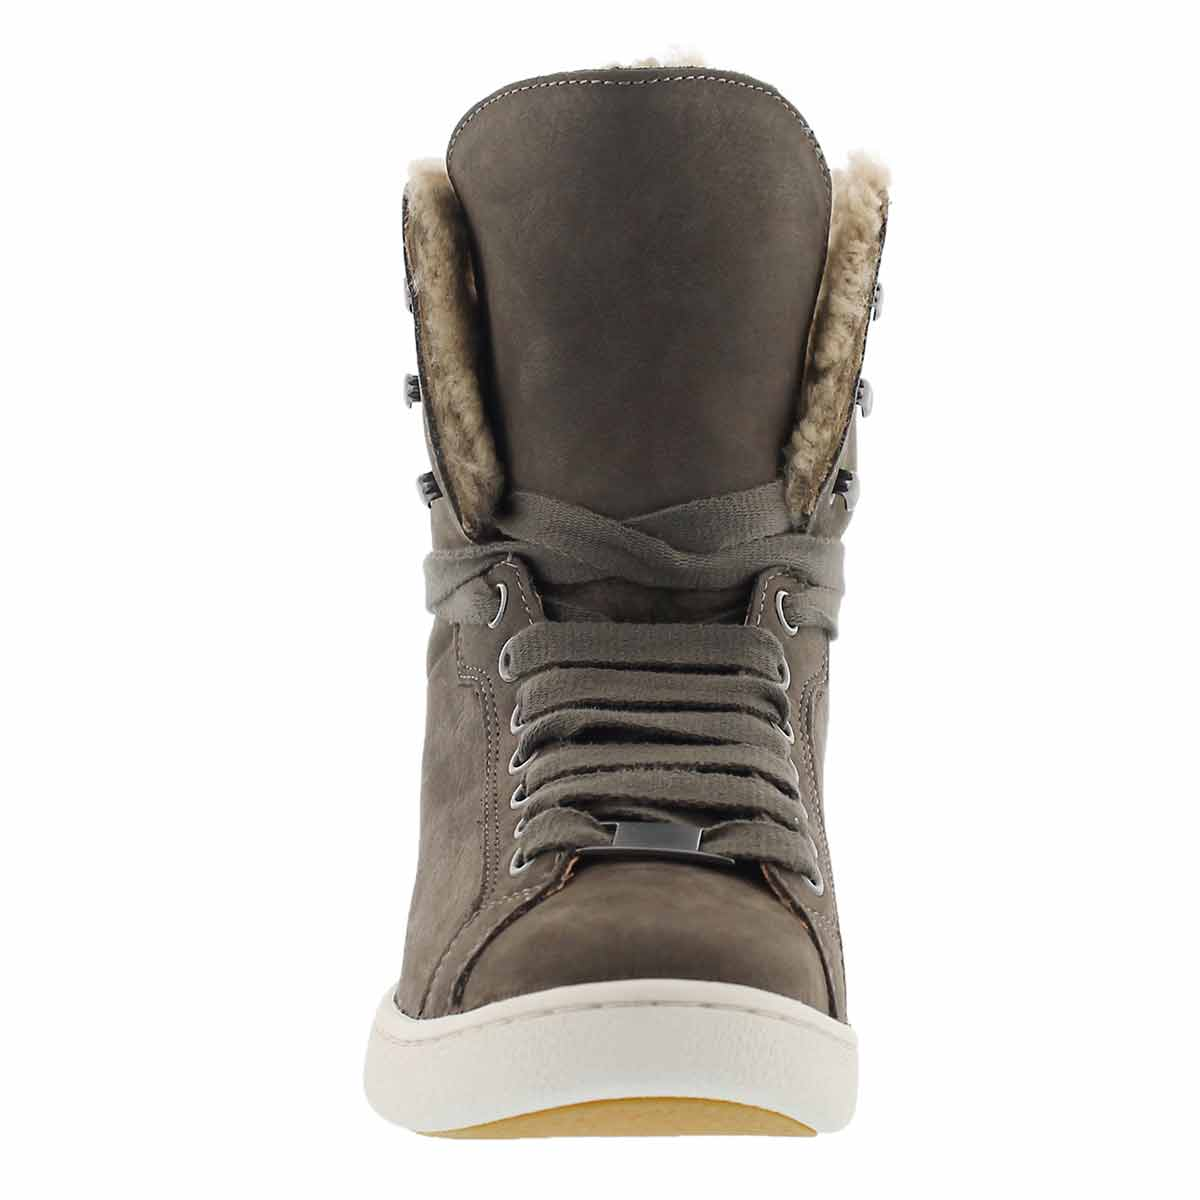 Lds Starlyn mouse fold cuff sneaker